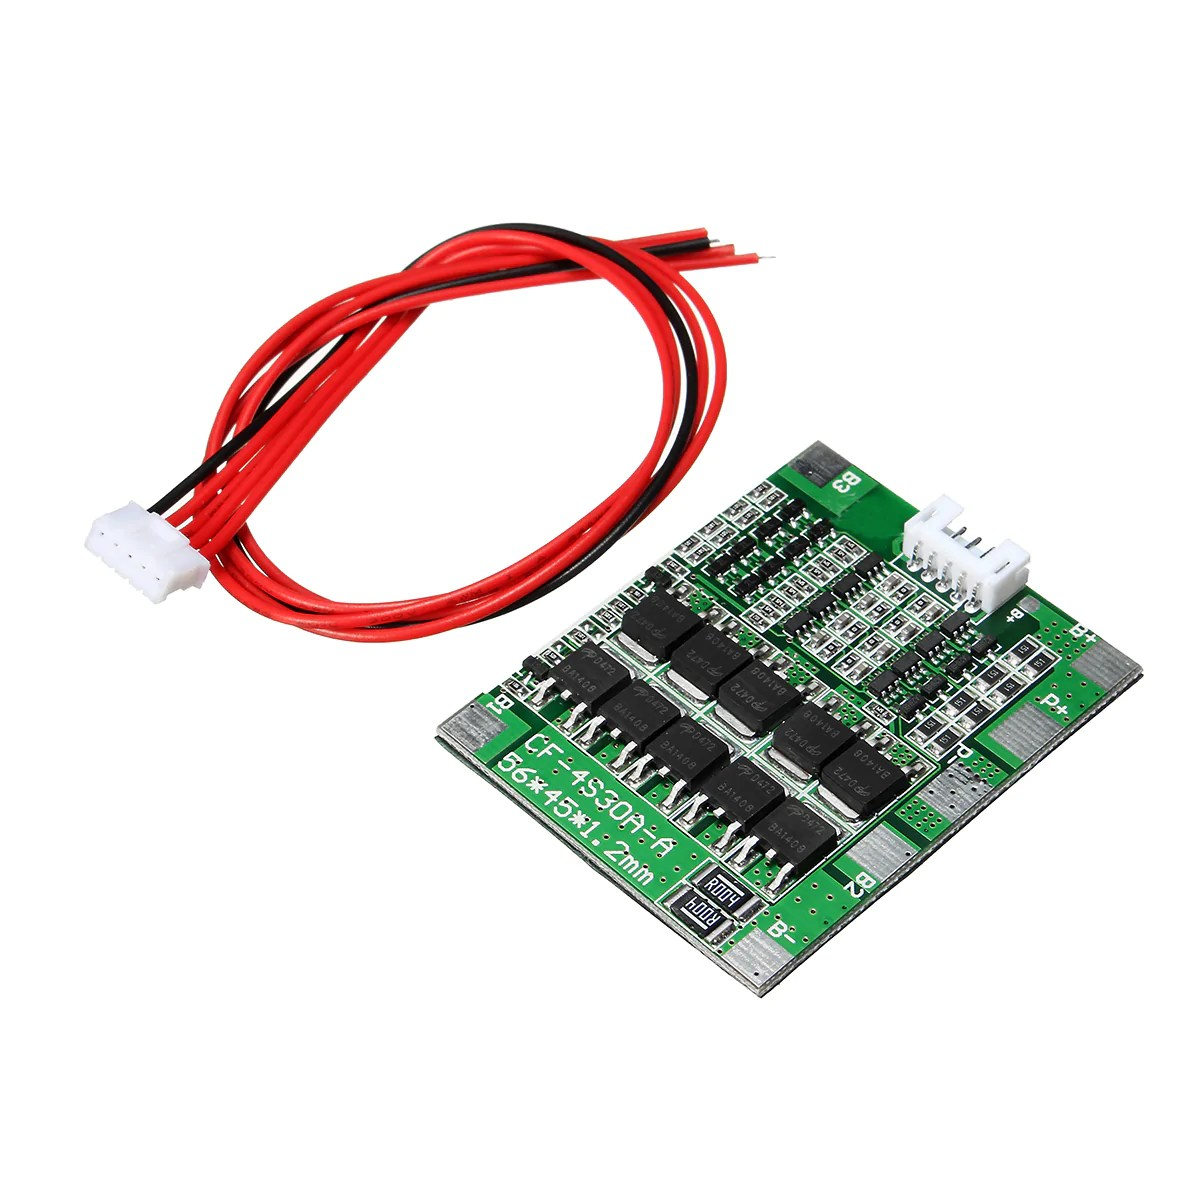 Lithium Kopen 10s 36v 35a Li Ion Lithium Battery Protection Bms Pcb Board With Balance